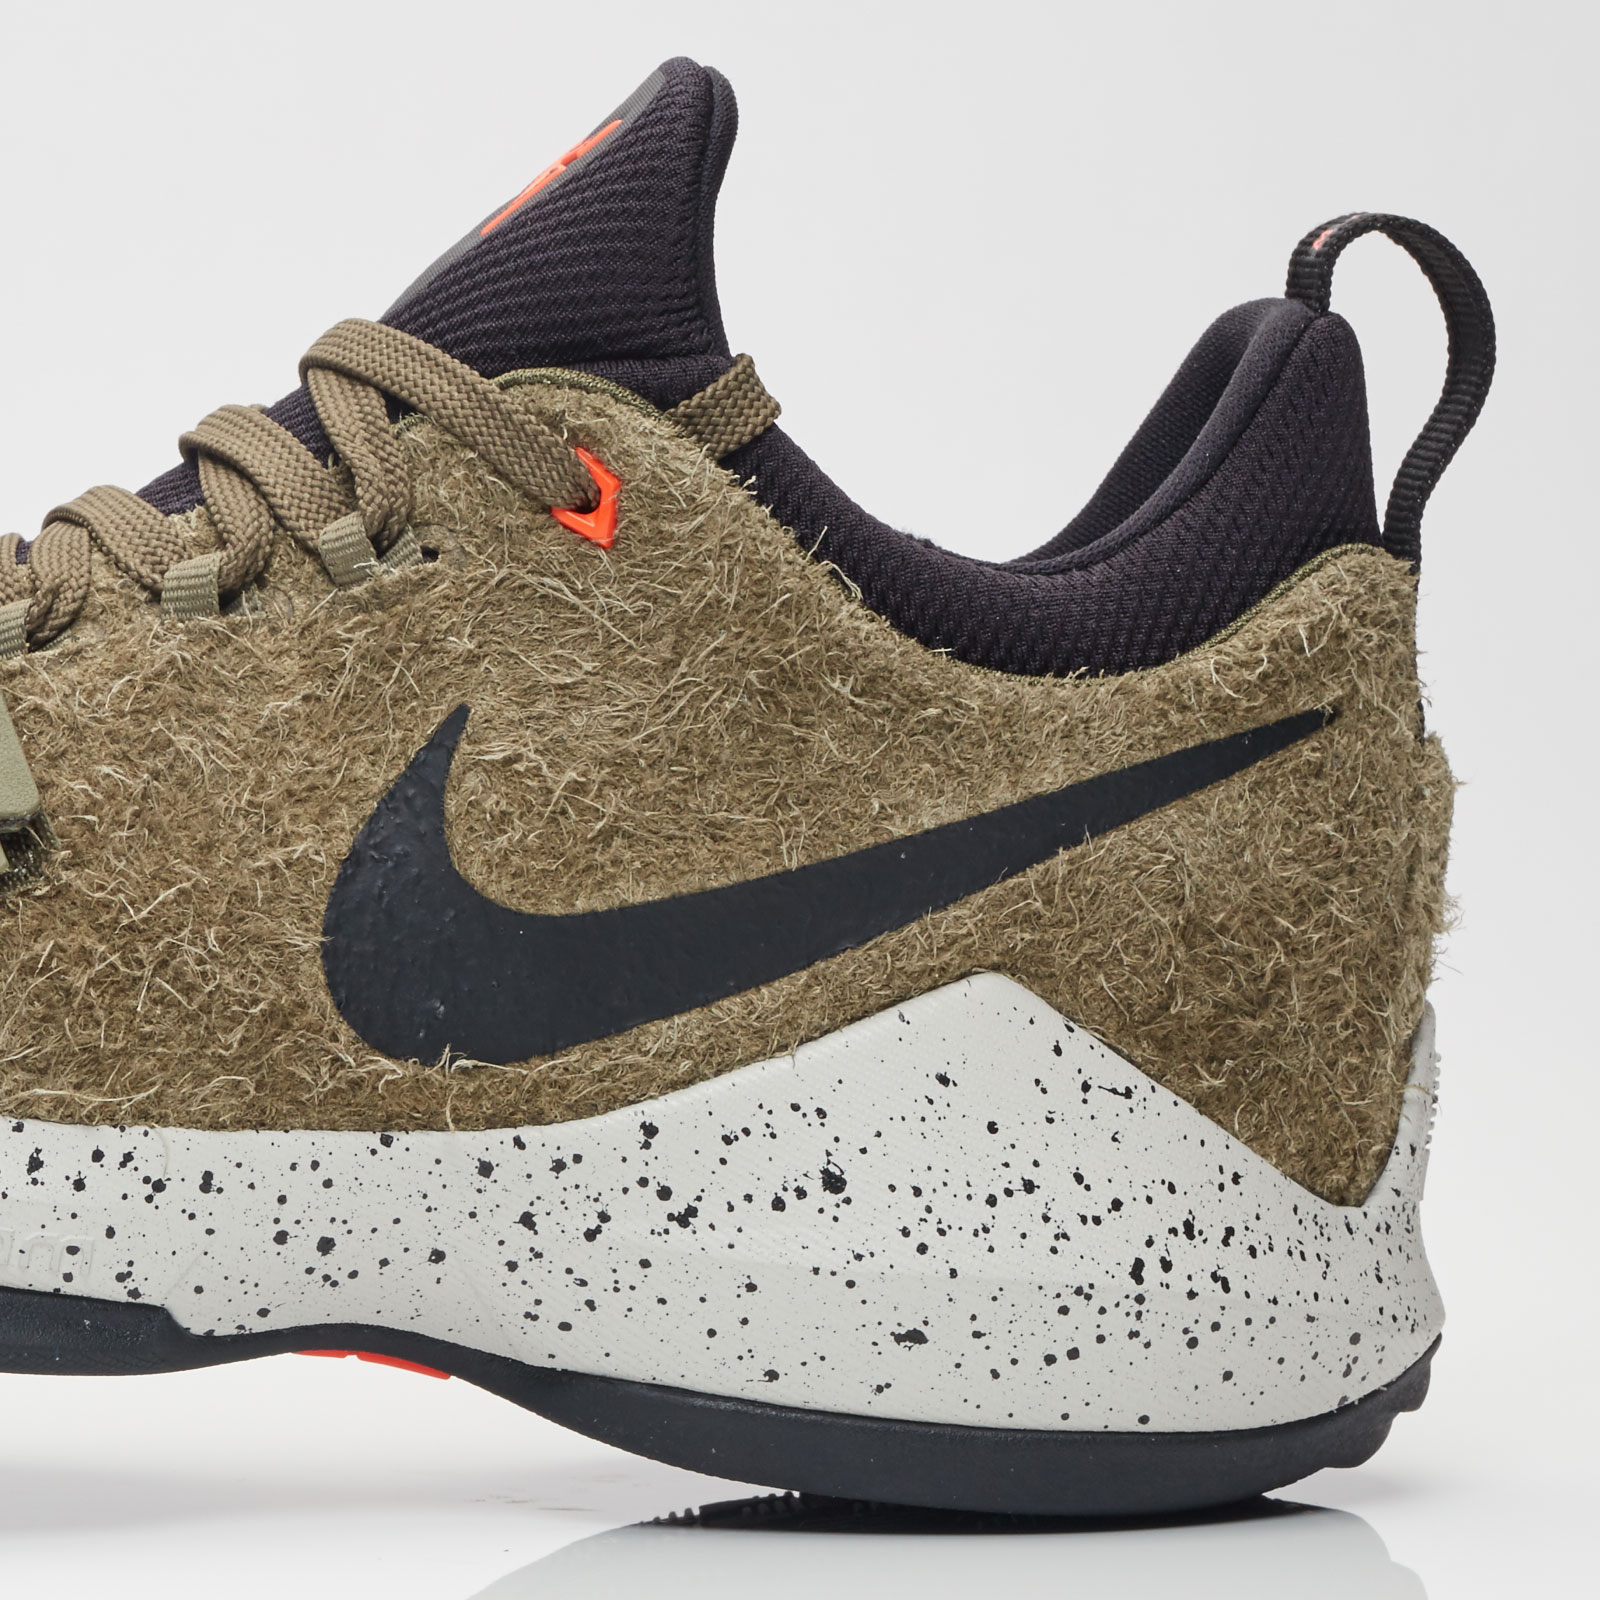 e295ff585ec3 Nike PG1 Elements - 911085-200 - Sneakersnstuff